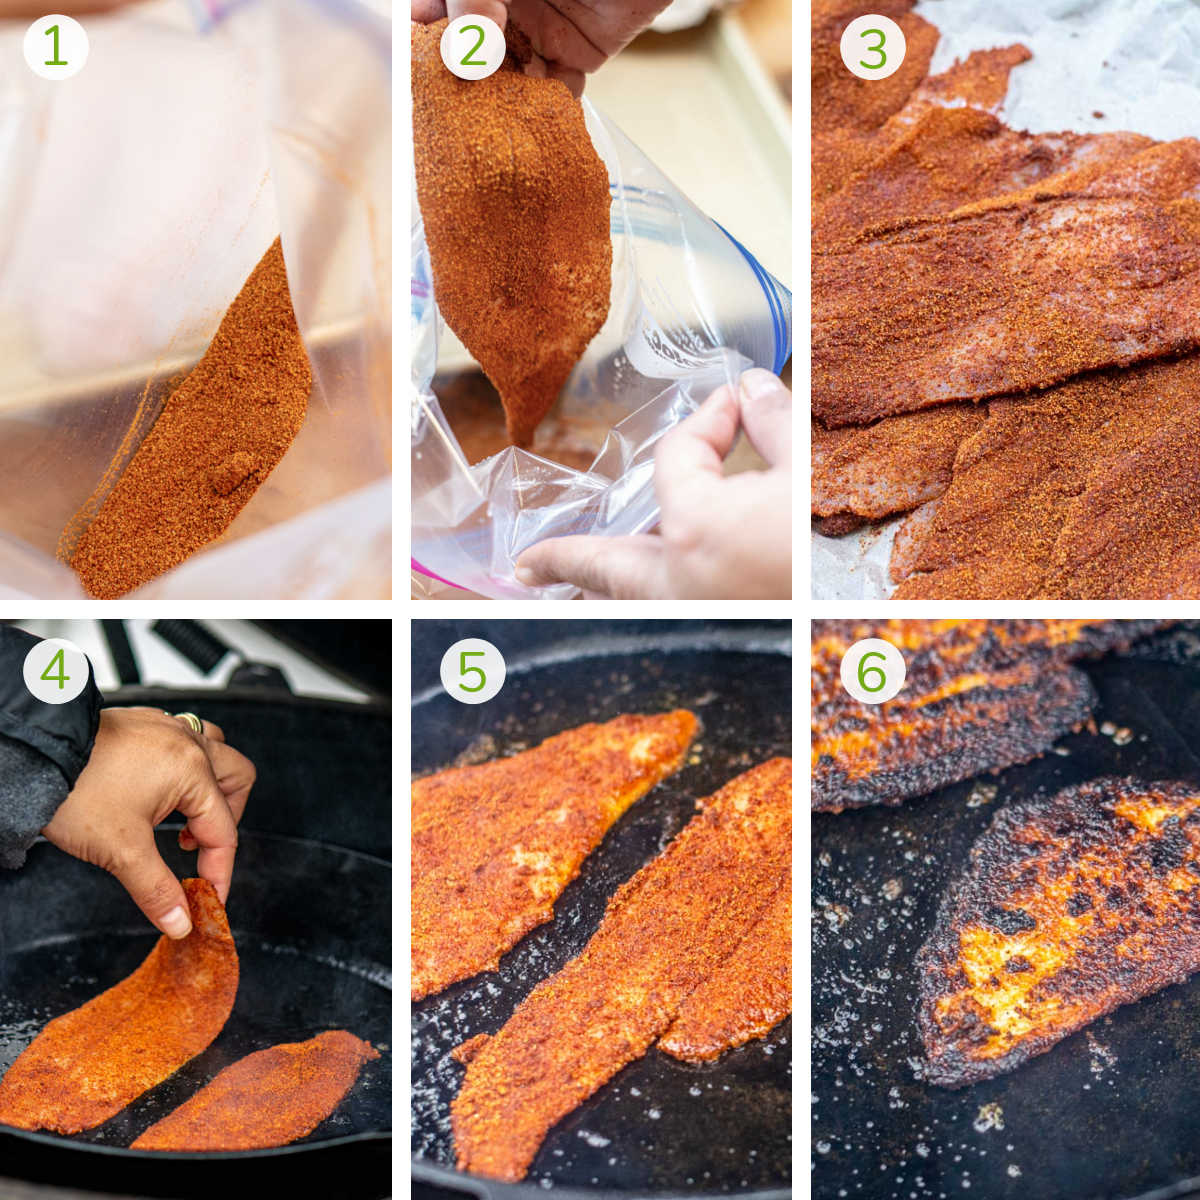 process photos showing how to apply the blackening rub, adding to the cast iron on the grill and turning it over.